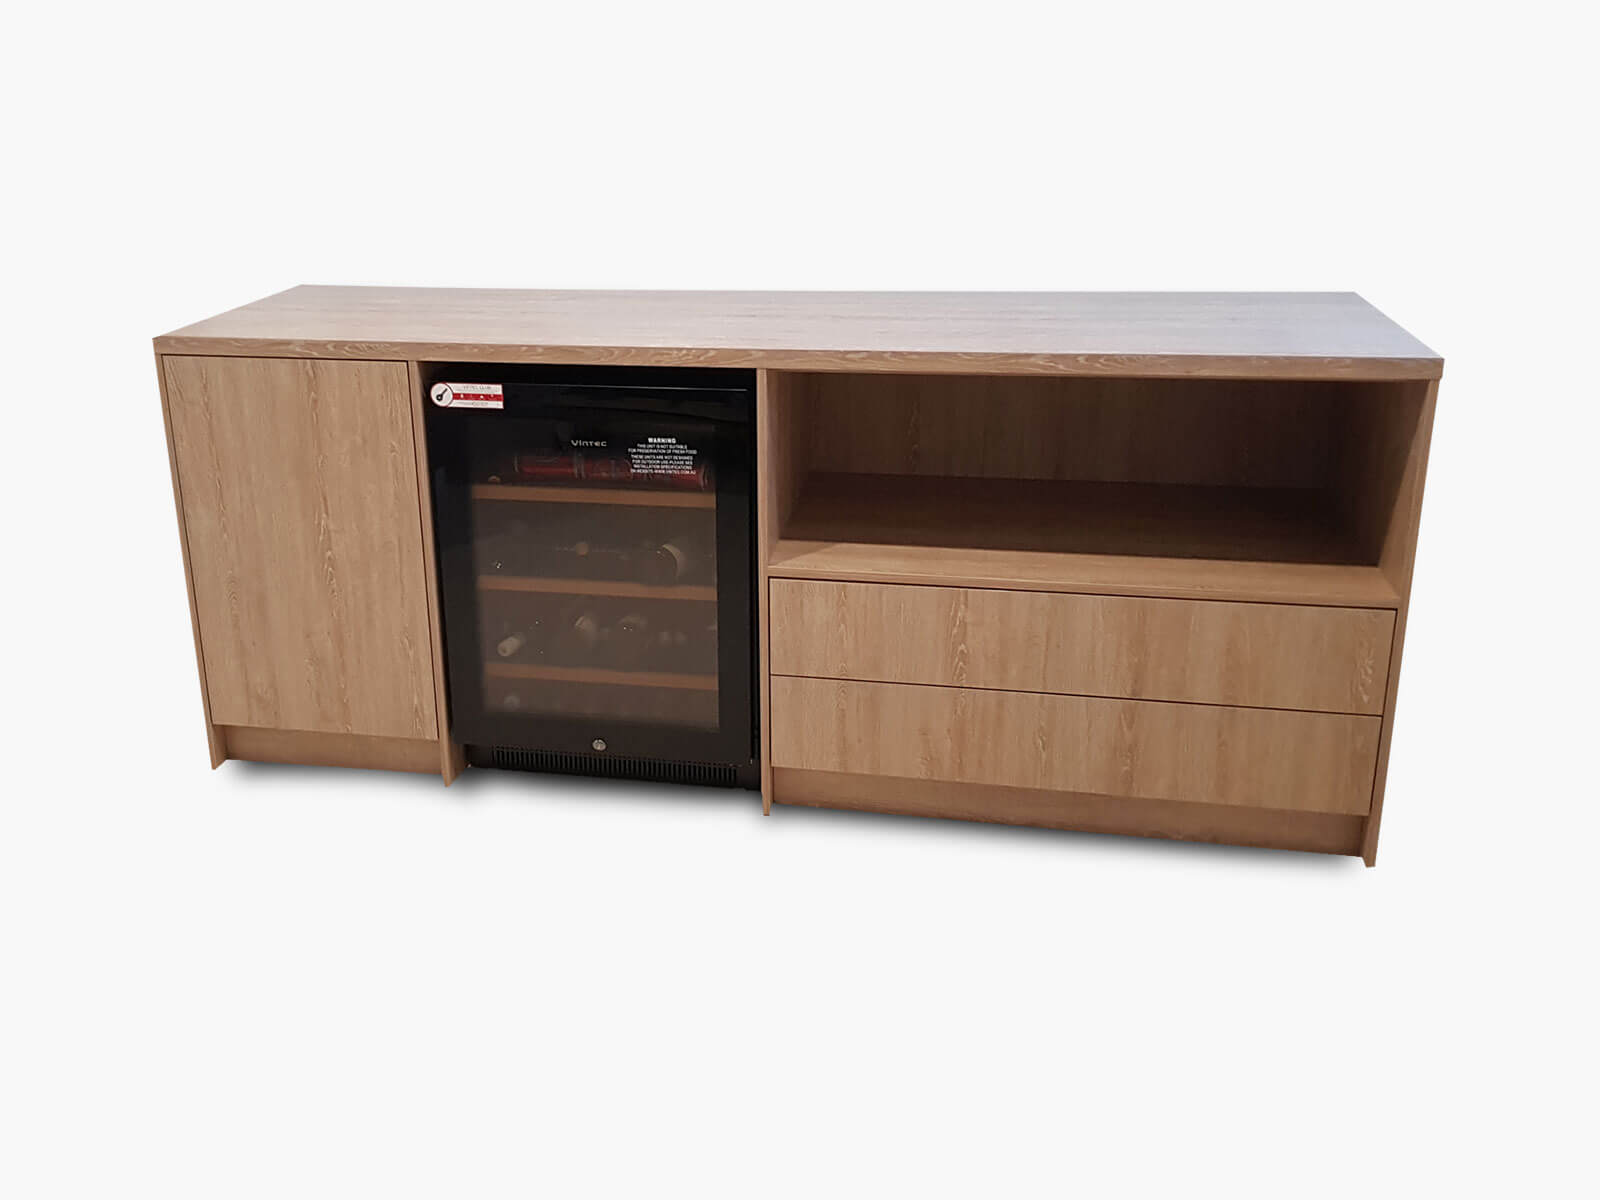 Applecross-Bar Timber Furniture